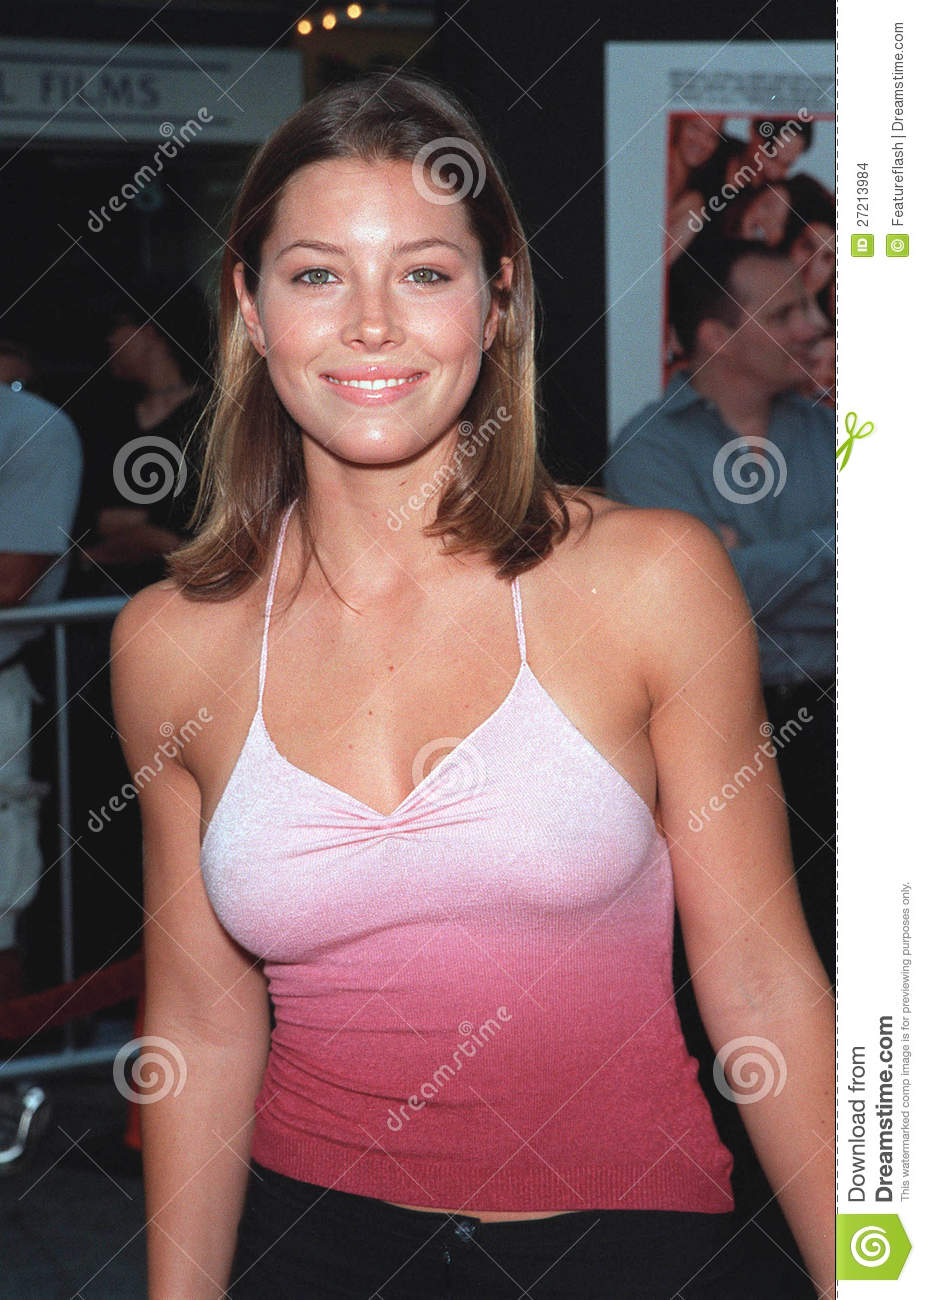 jessica biel editorial stock image image 27213984 clip art welcome clipart welcome 2018